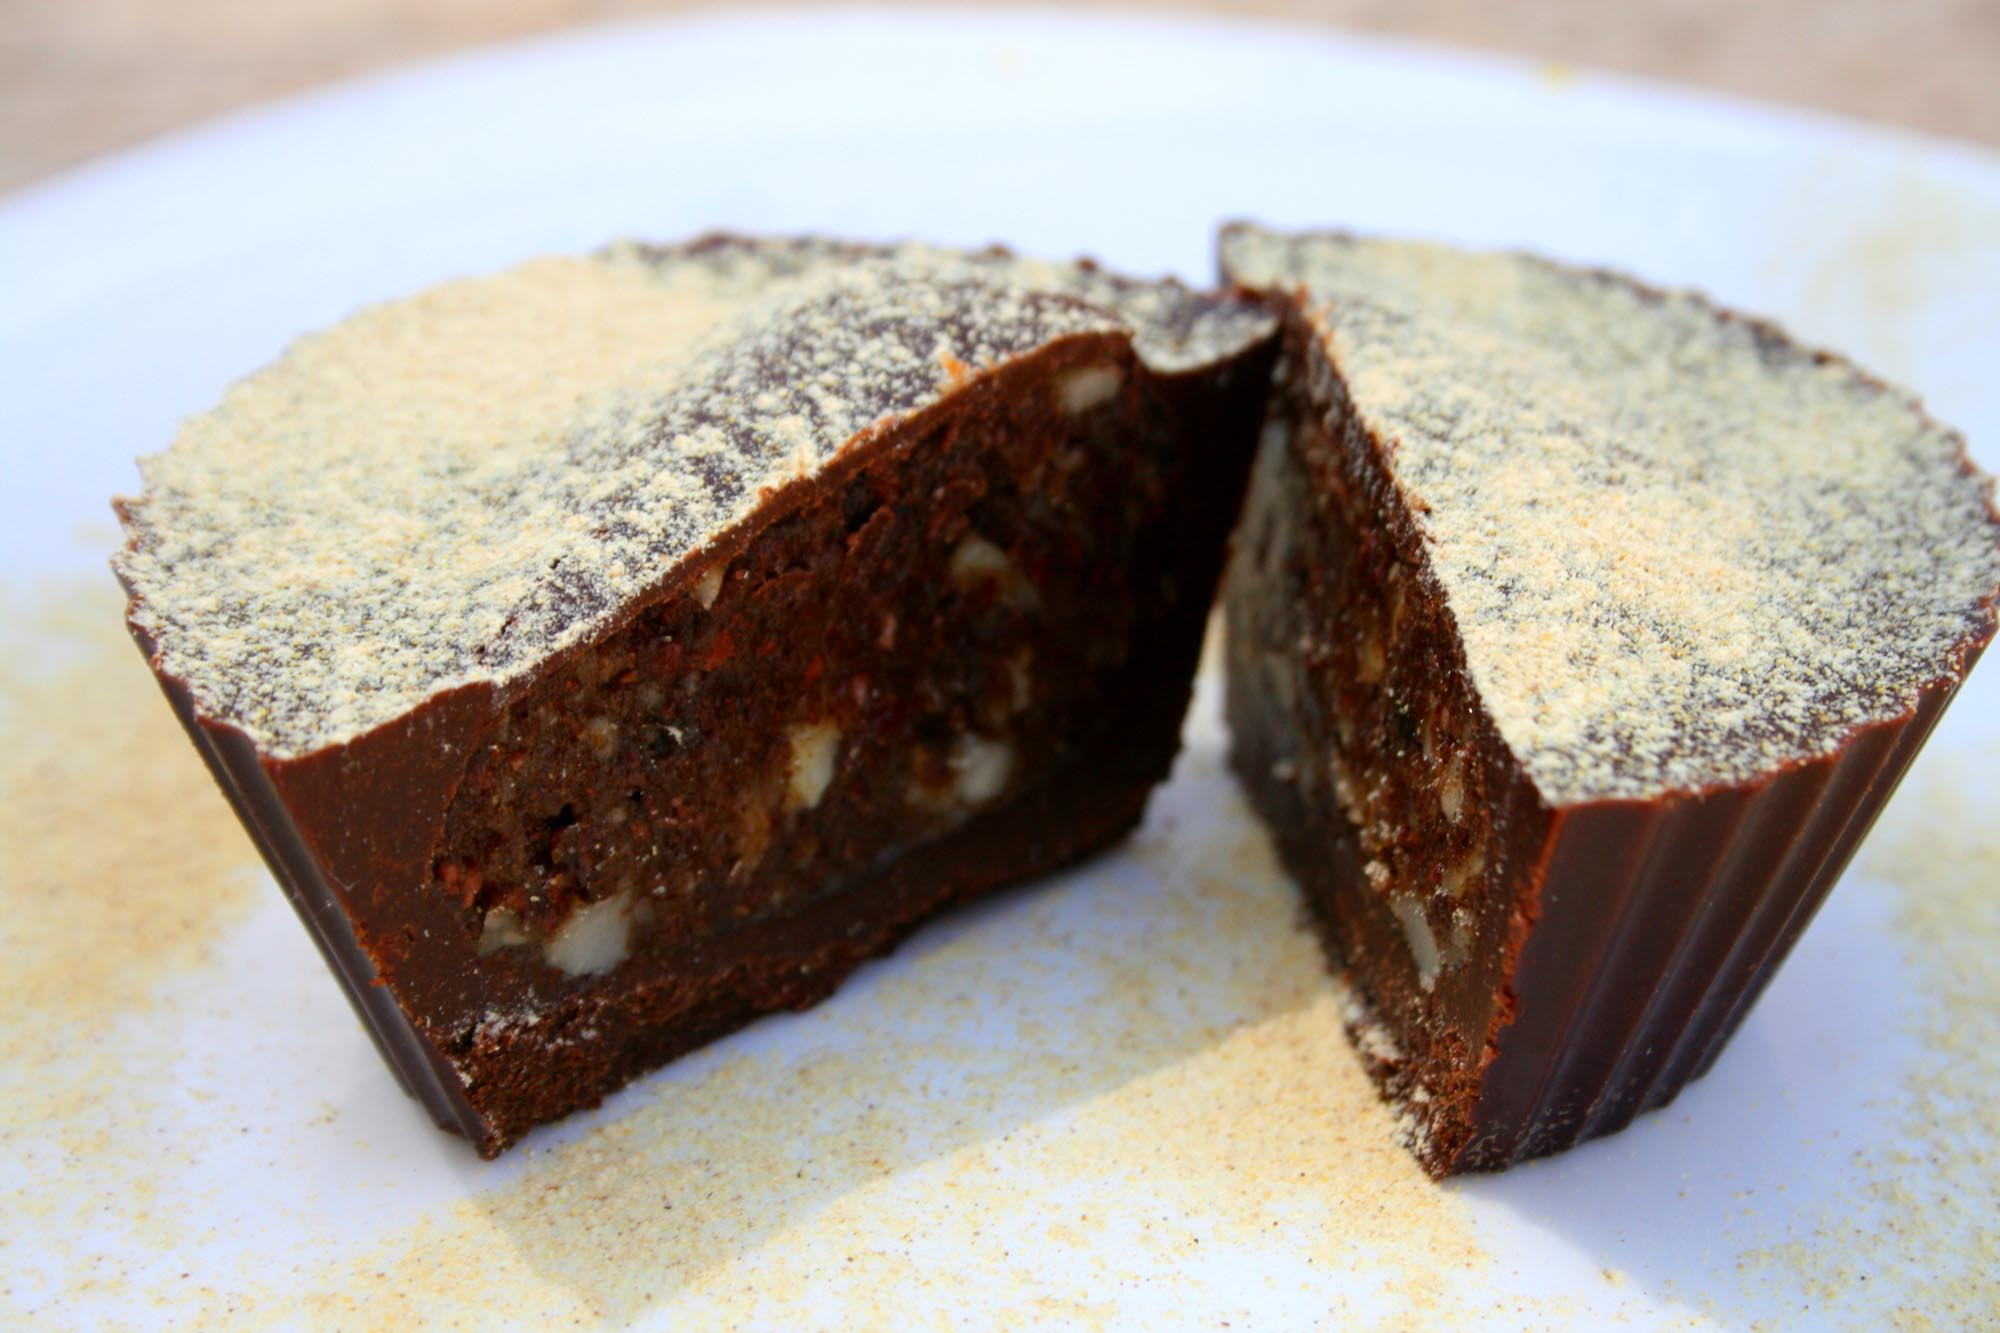 Sprouted nut and chocolate